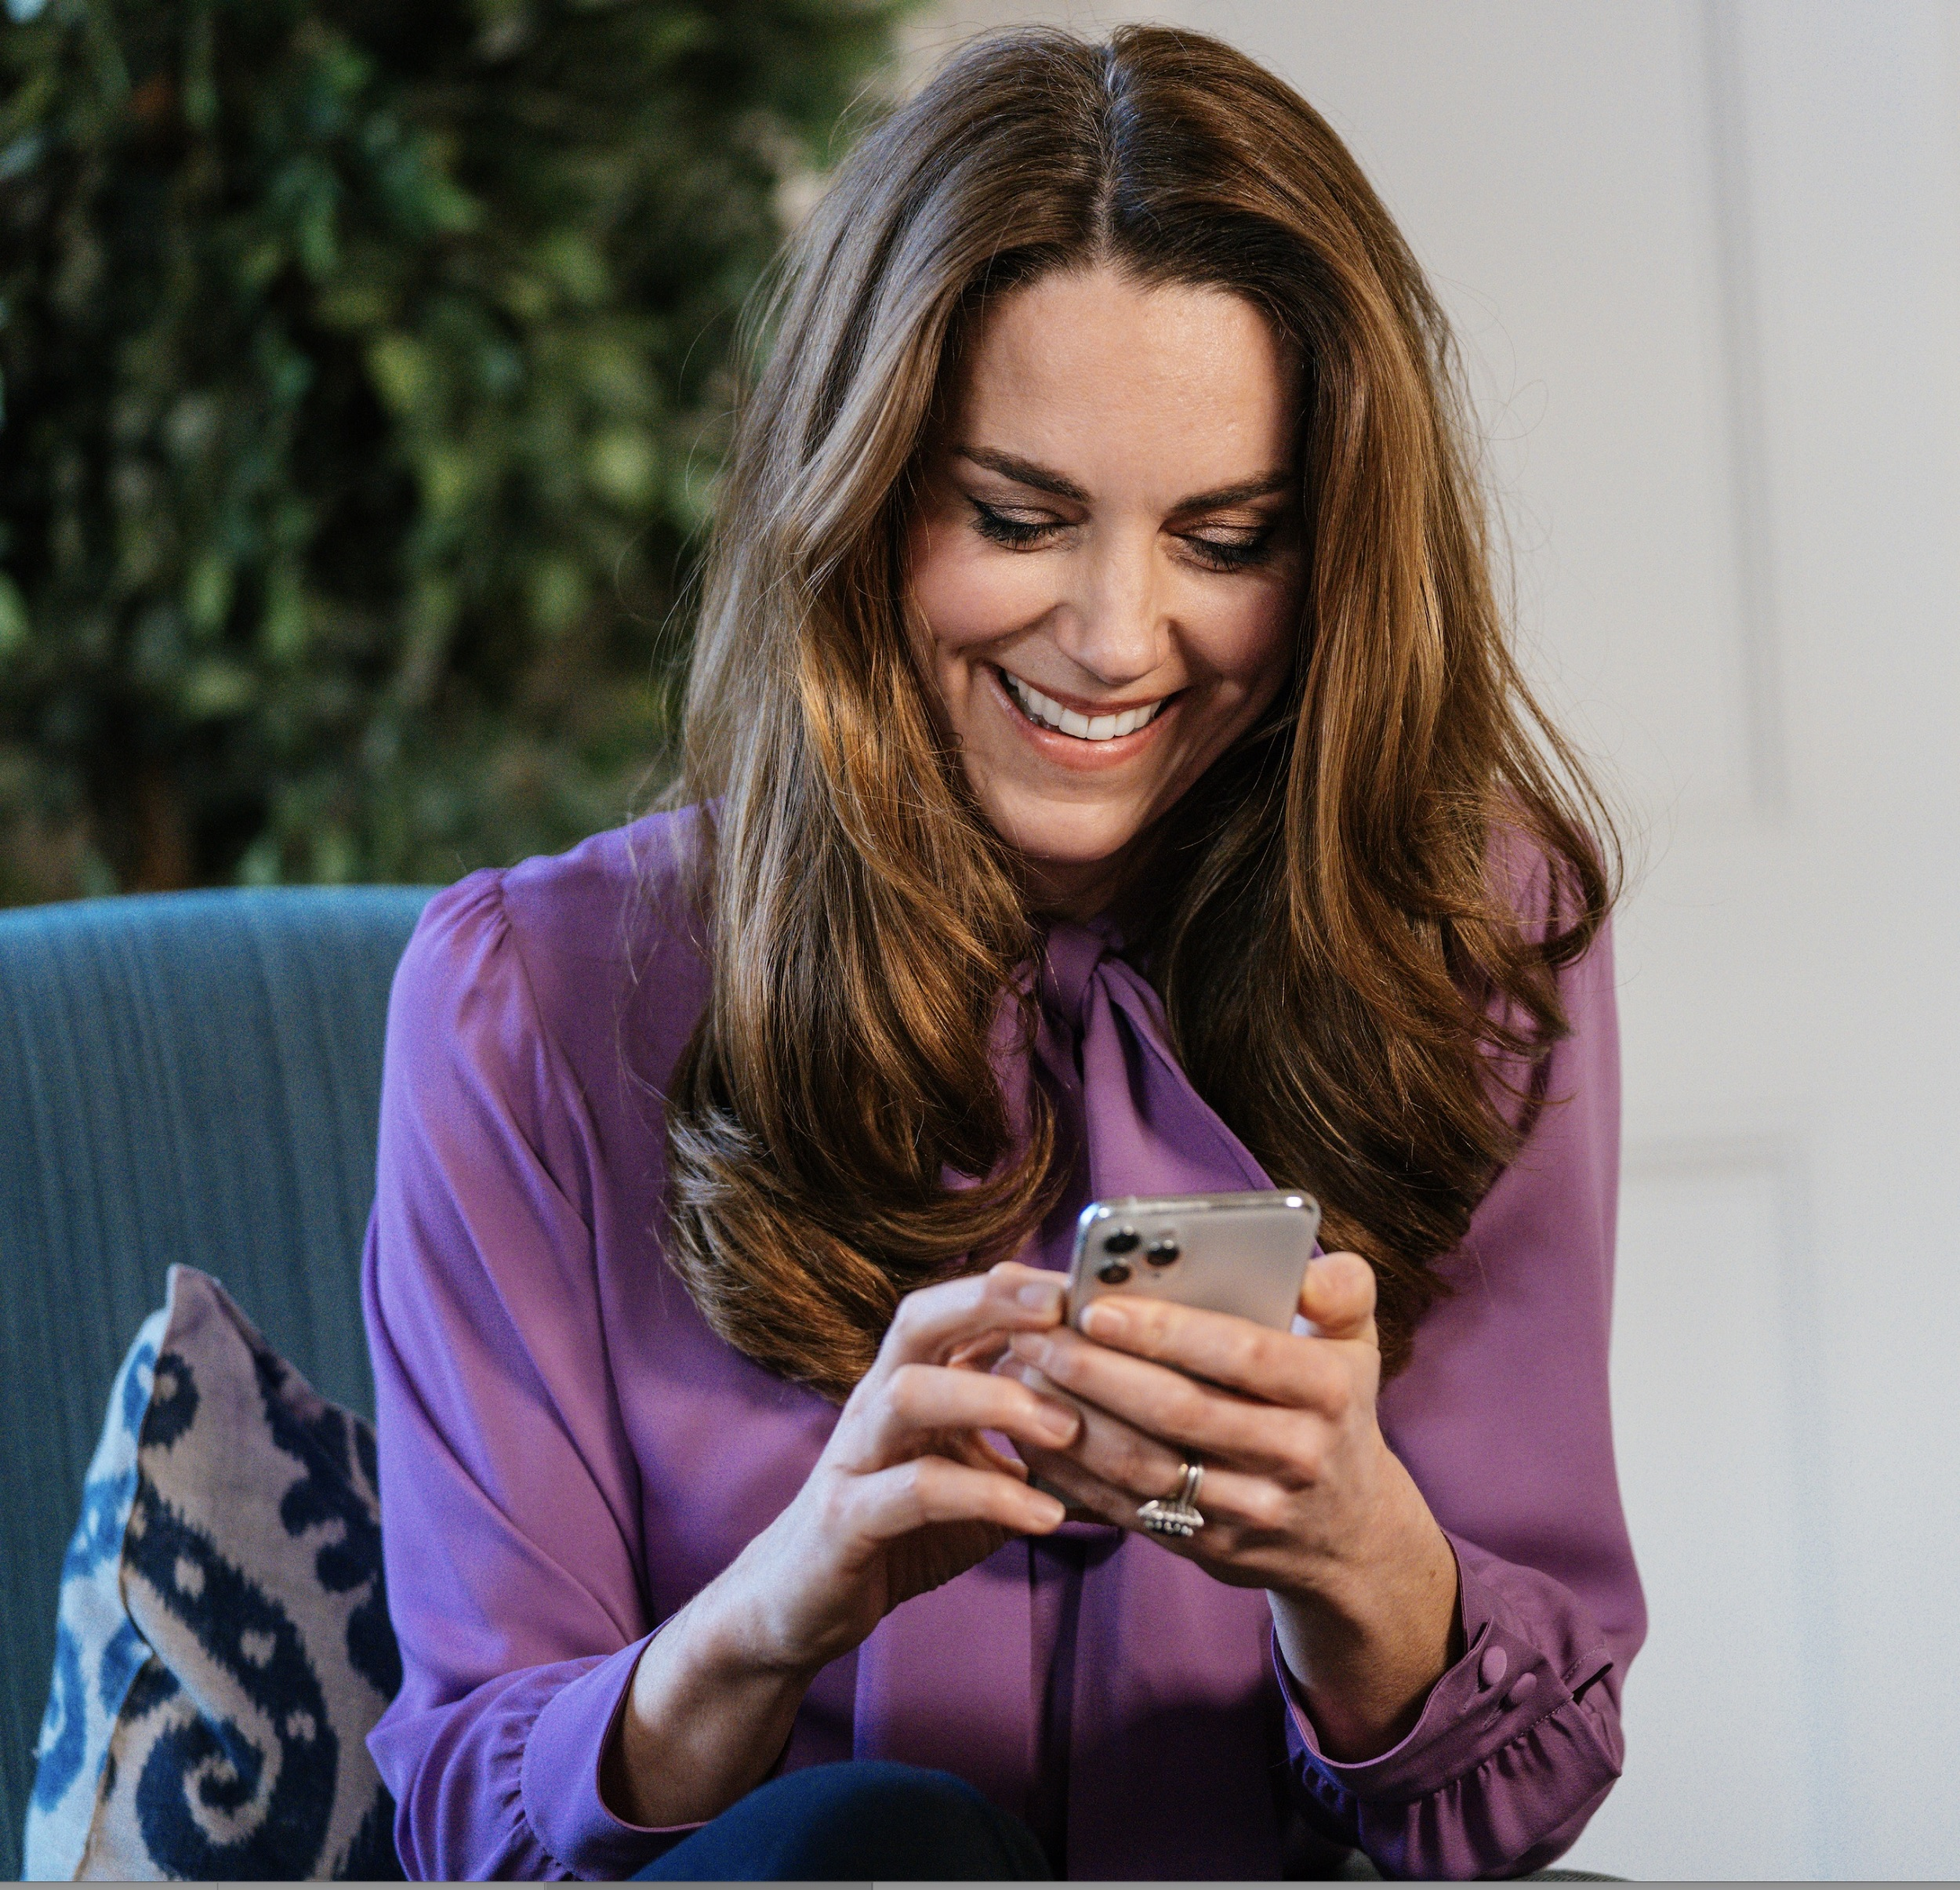 The Duchess of Cambridge had a candid early years Q&A session